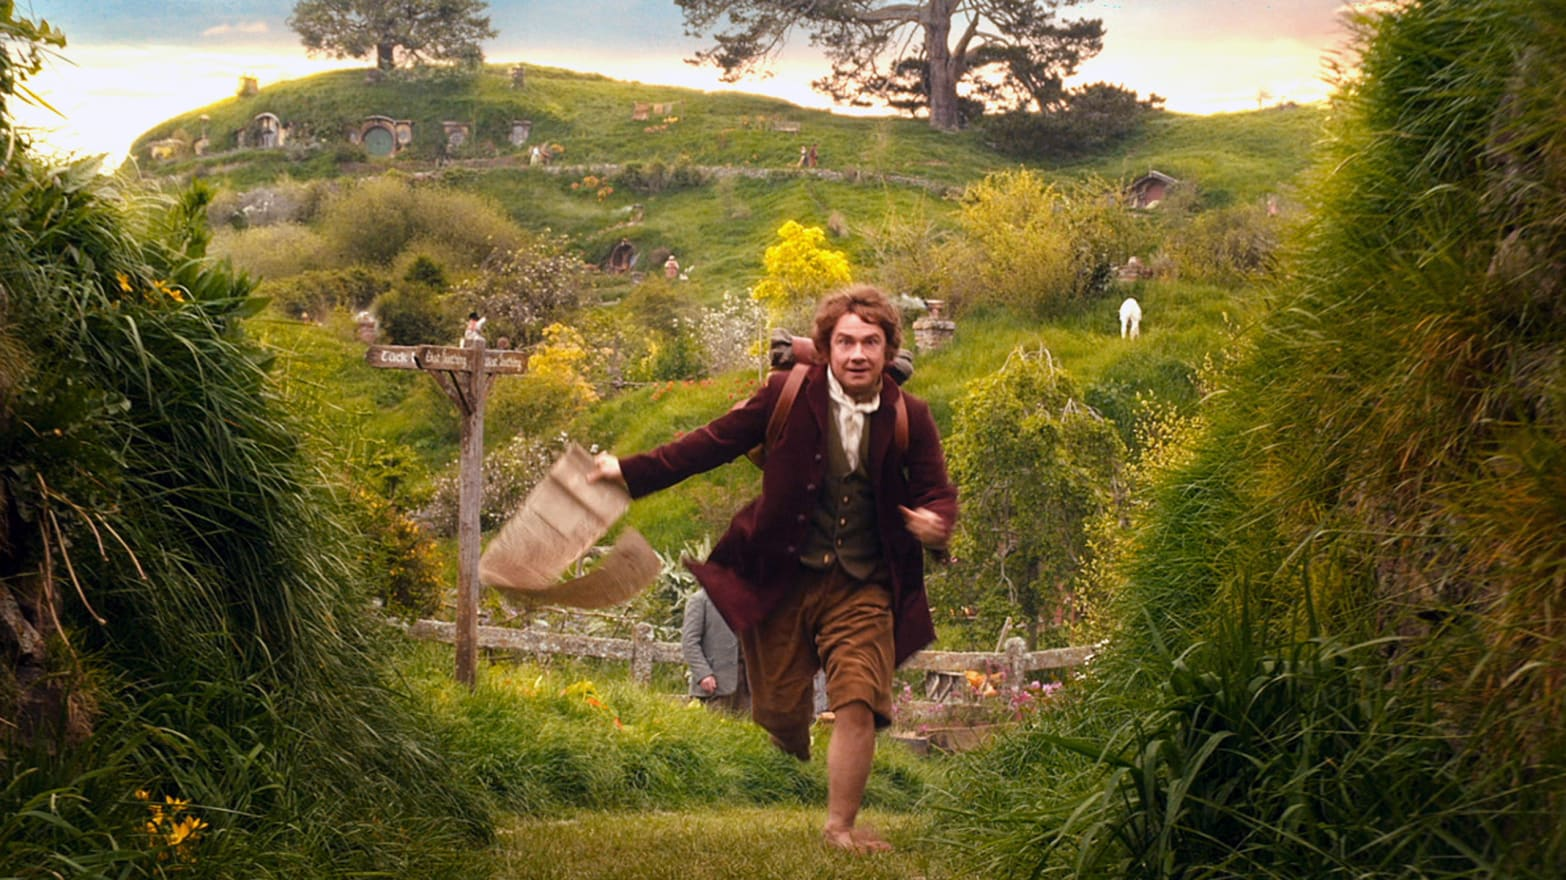 An in depth look at jrr tolkiens the hobbit